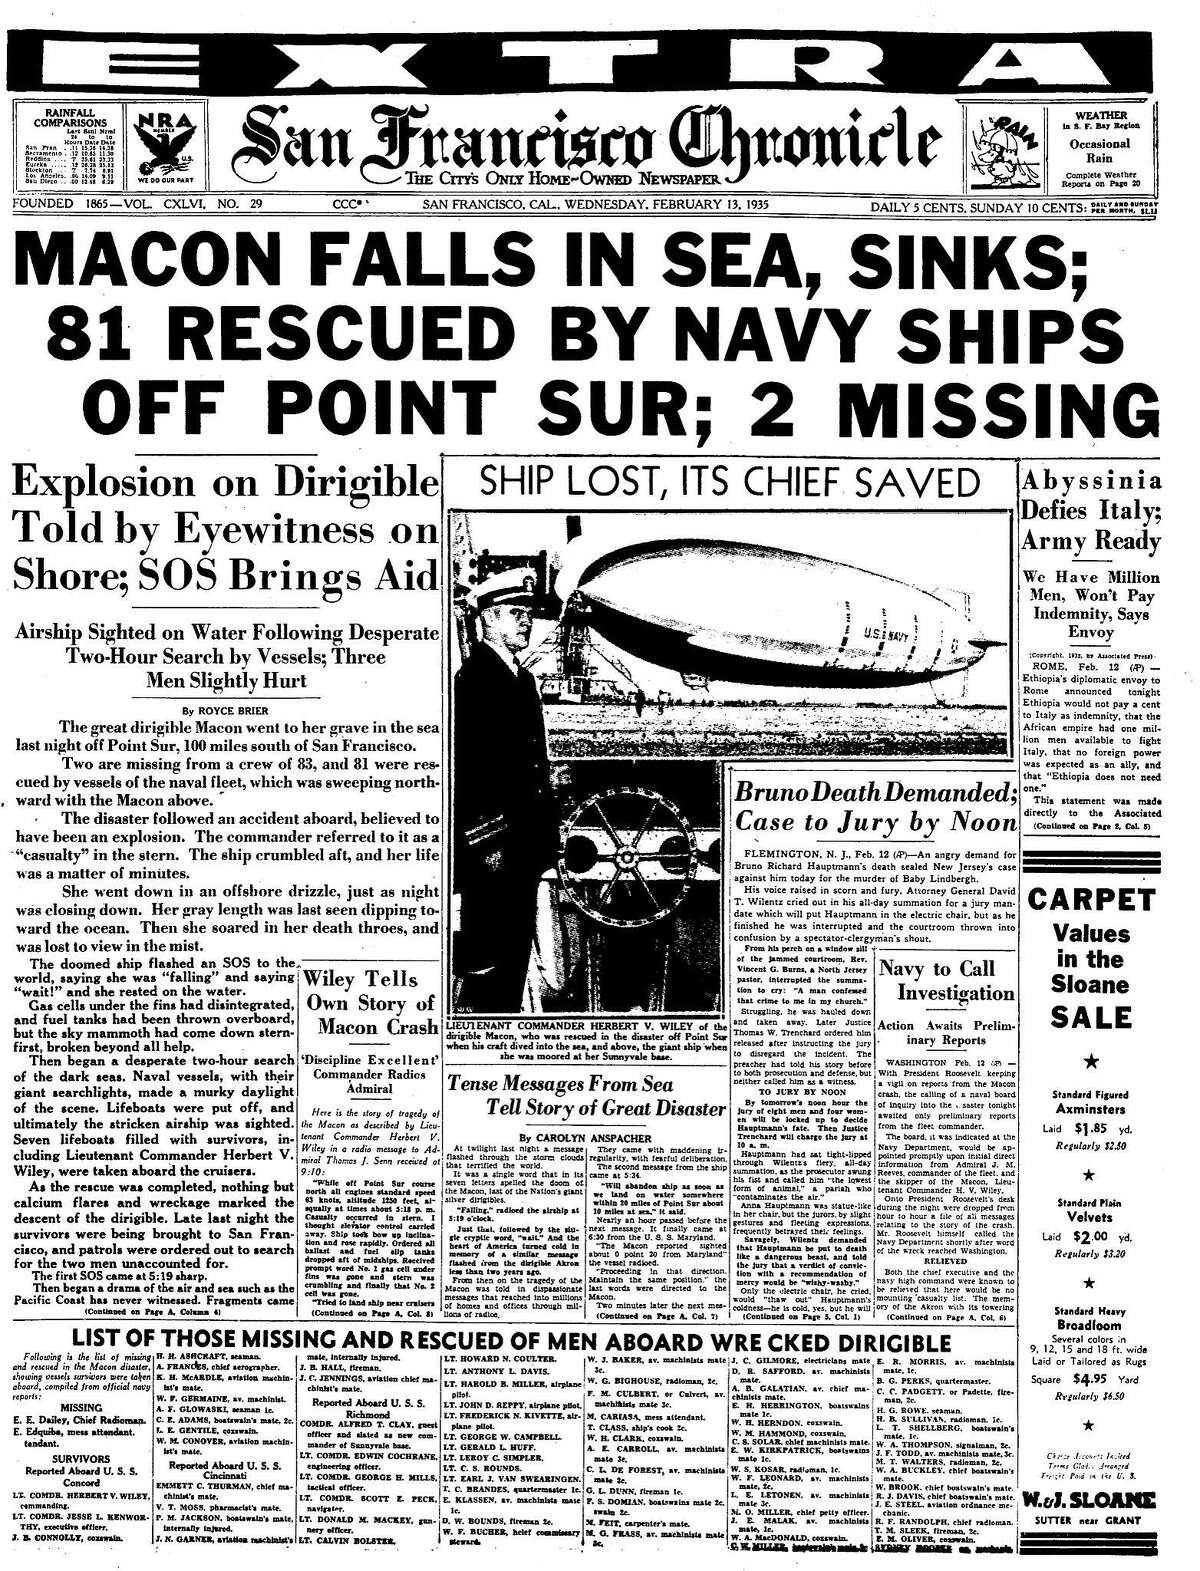 Historic Chronicle front page The Macon, a blimp falls into the Pacific Ocean .. 02/13/1935 chron365